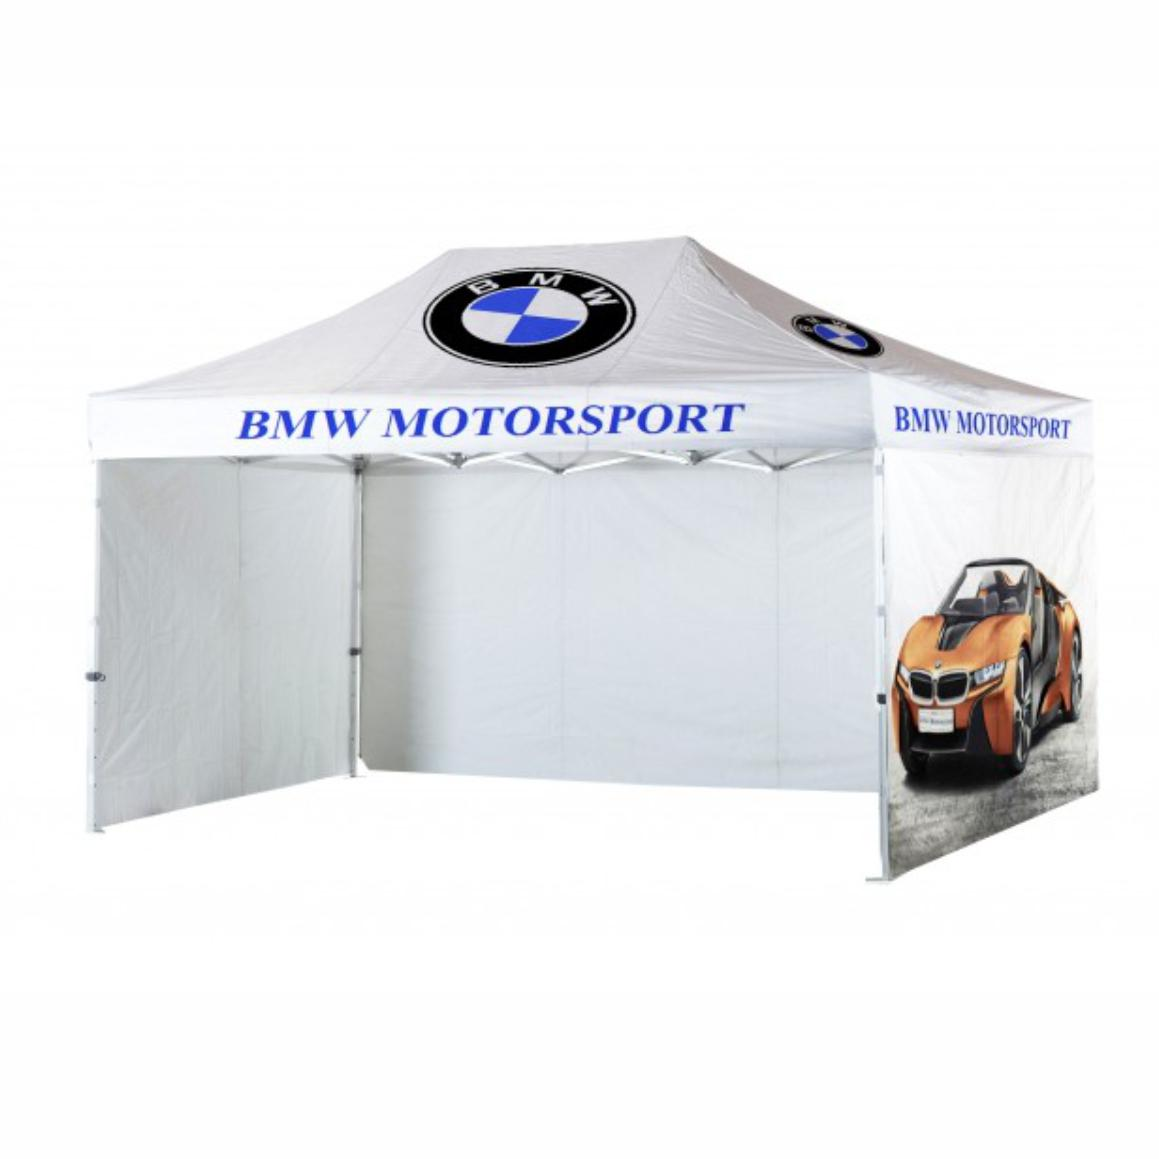 Exposure Gazebo Full Wall 4.5m X 1.9m